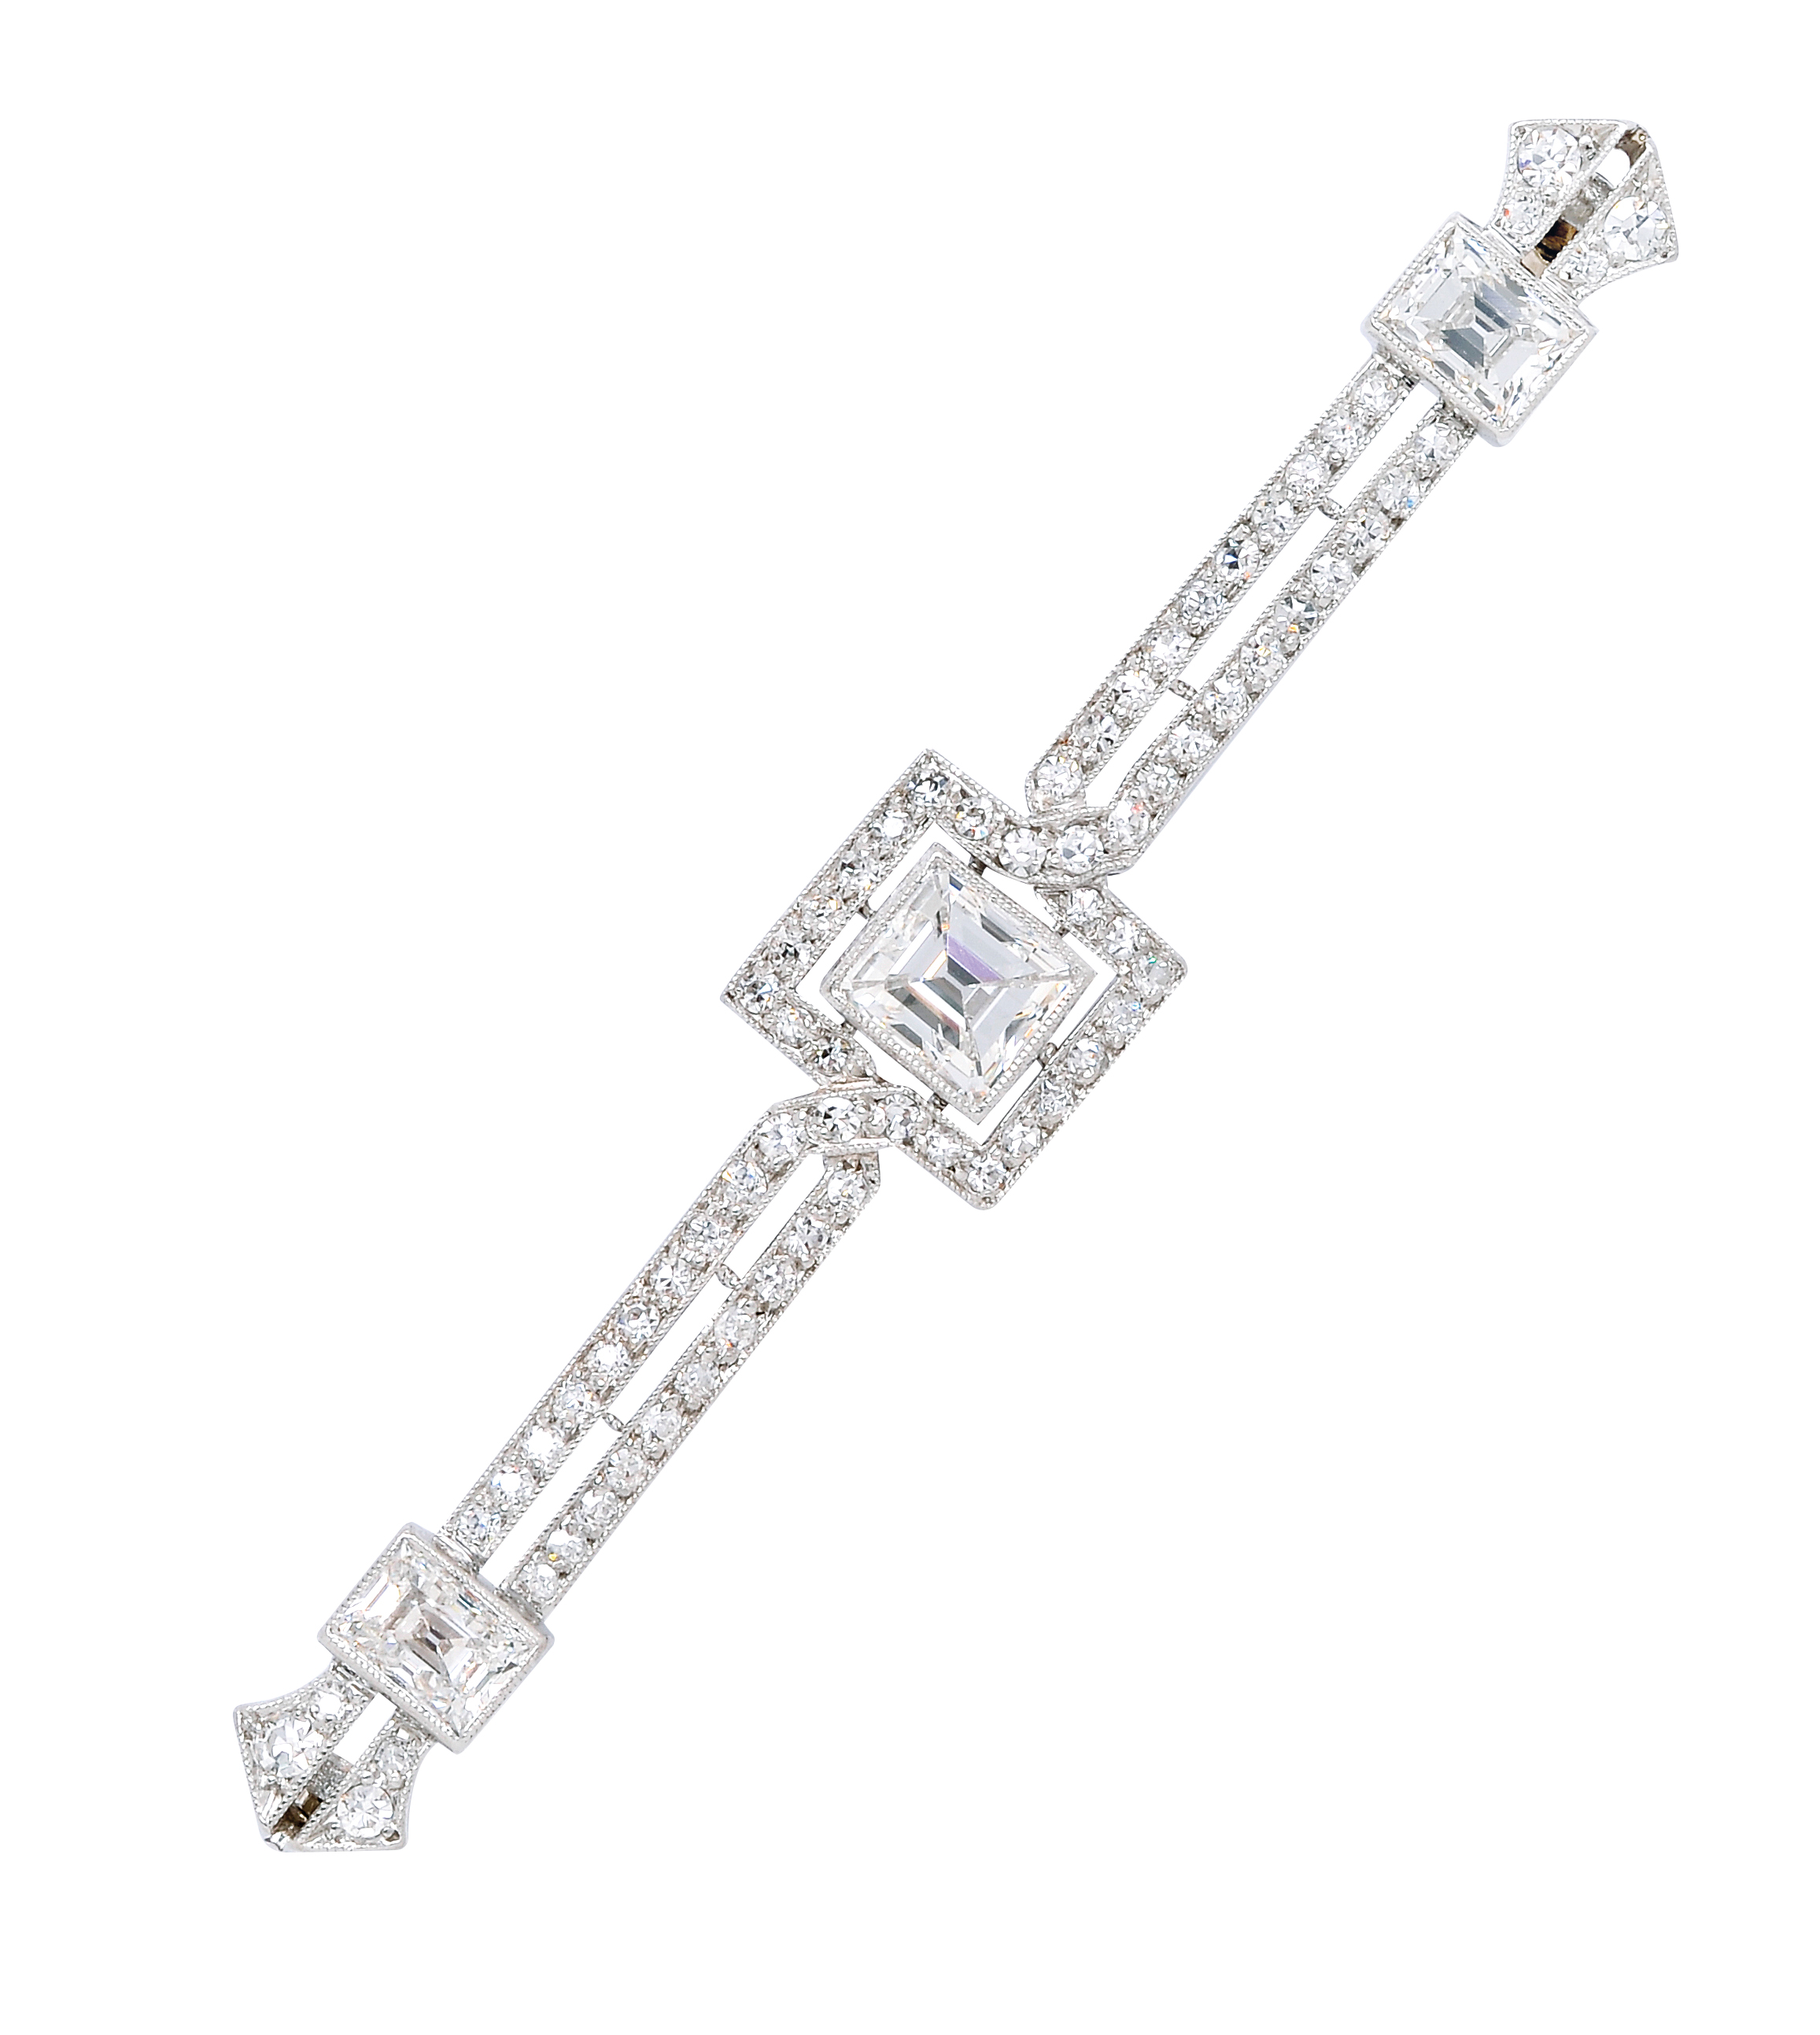 Art Deco Diamond and Platinum Bar Brooch: Lot 269, Spring 2014 sale